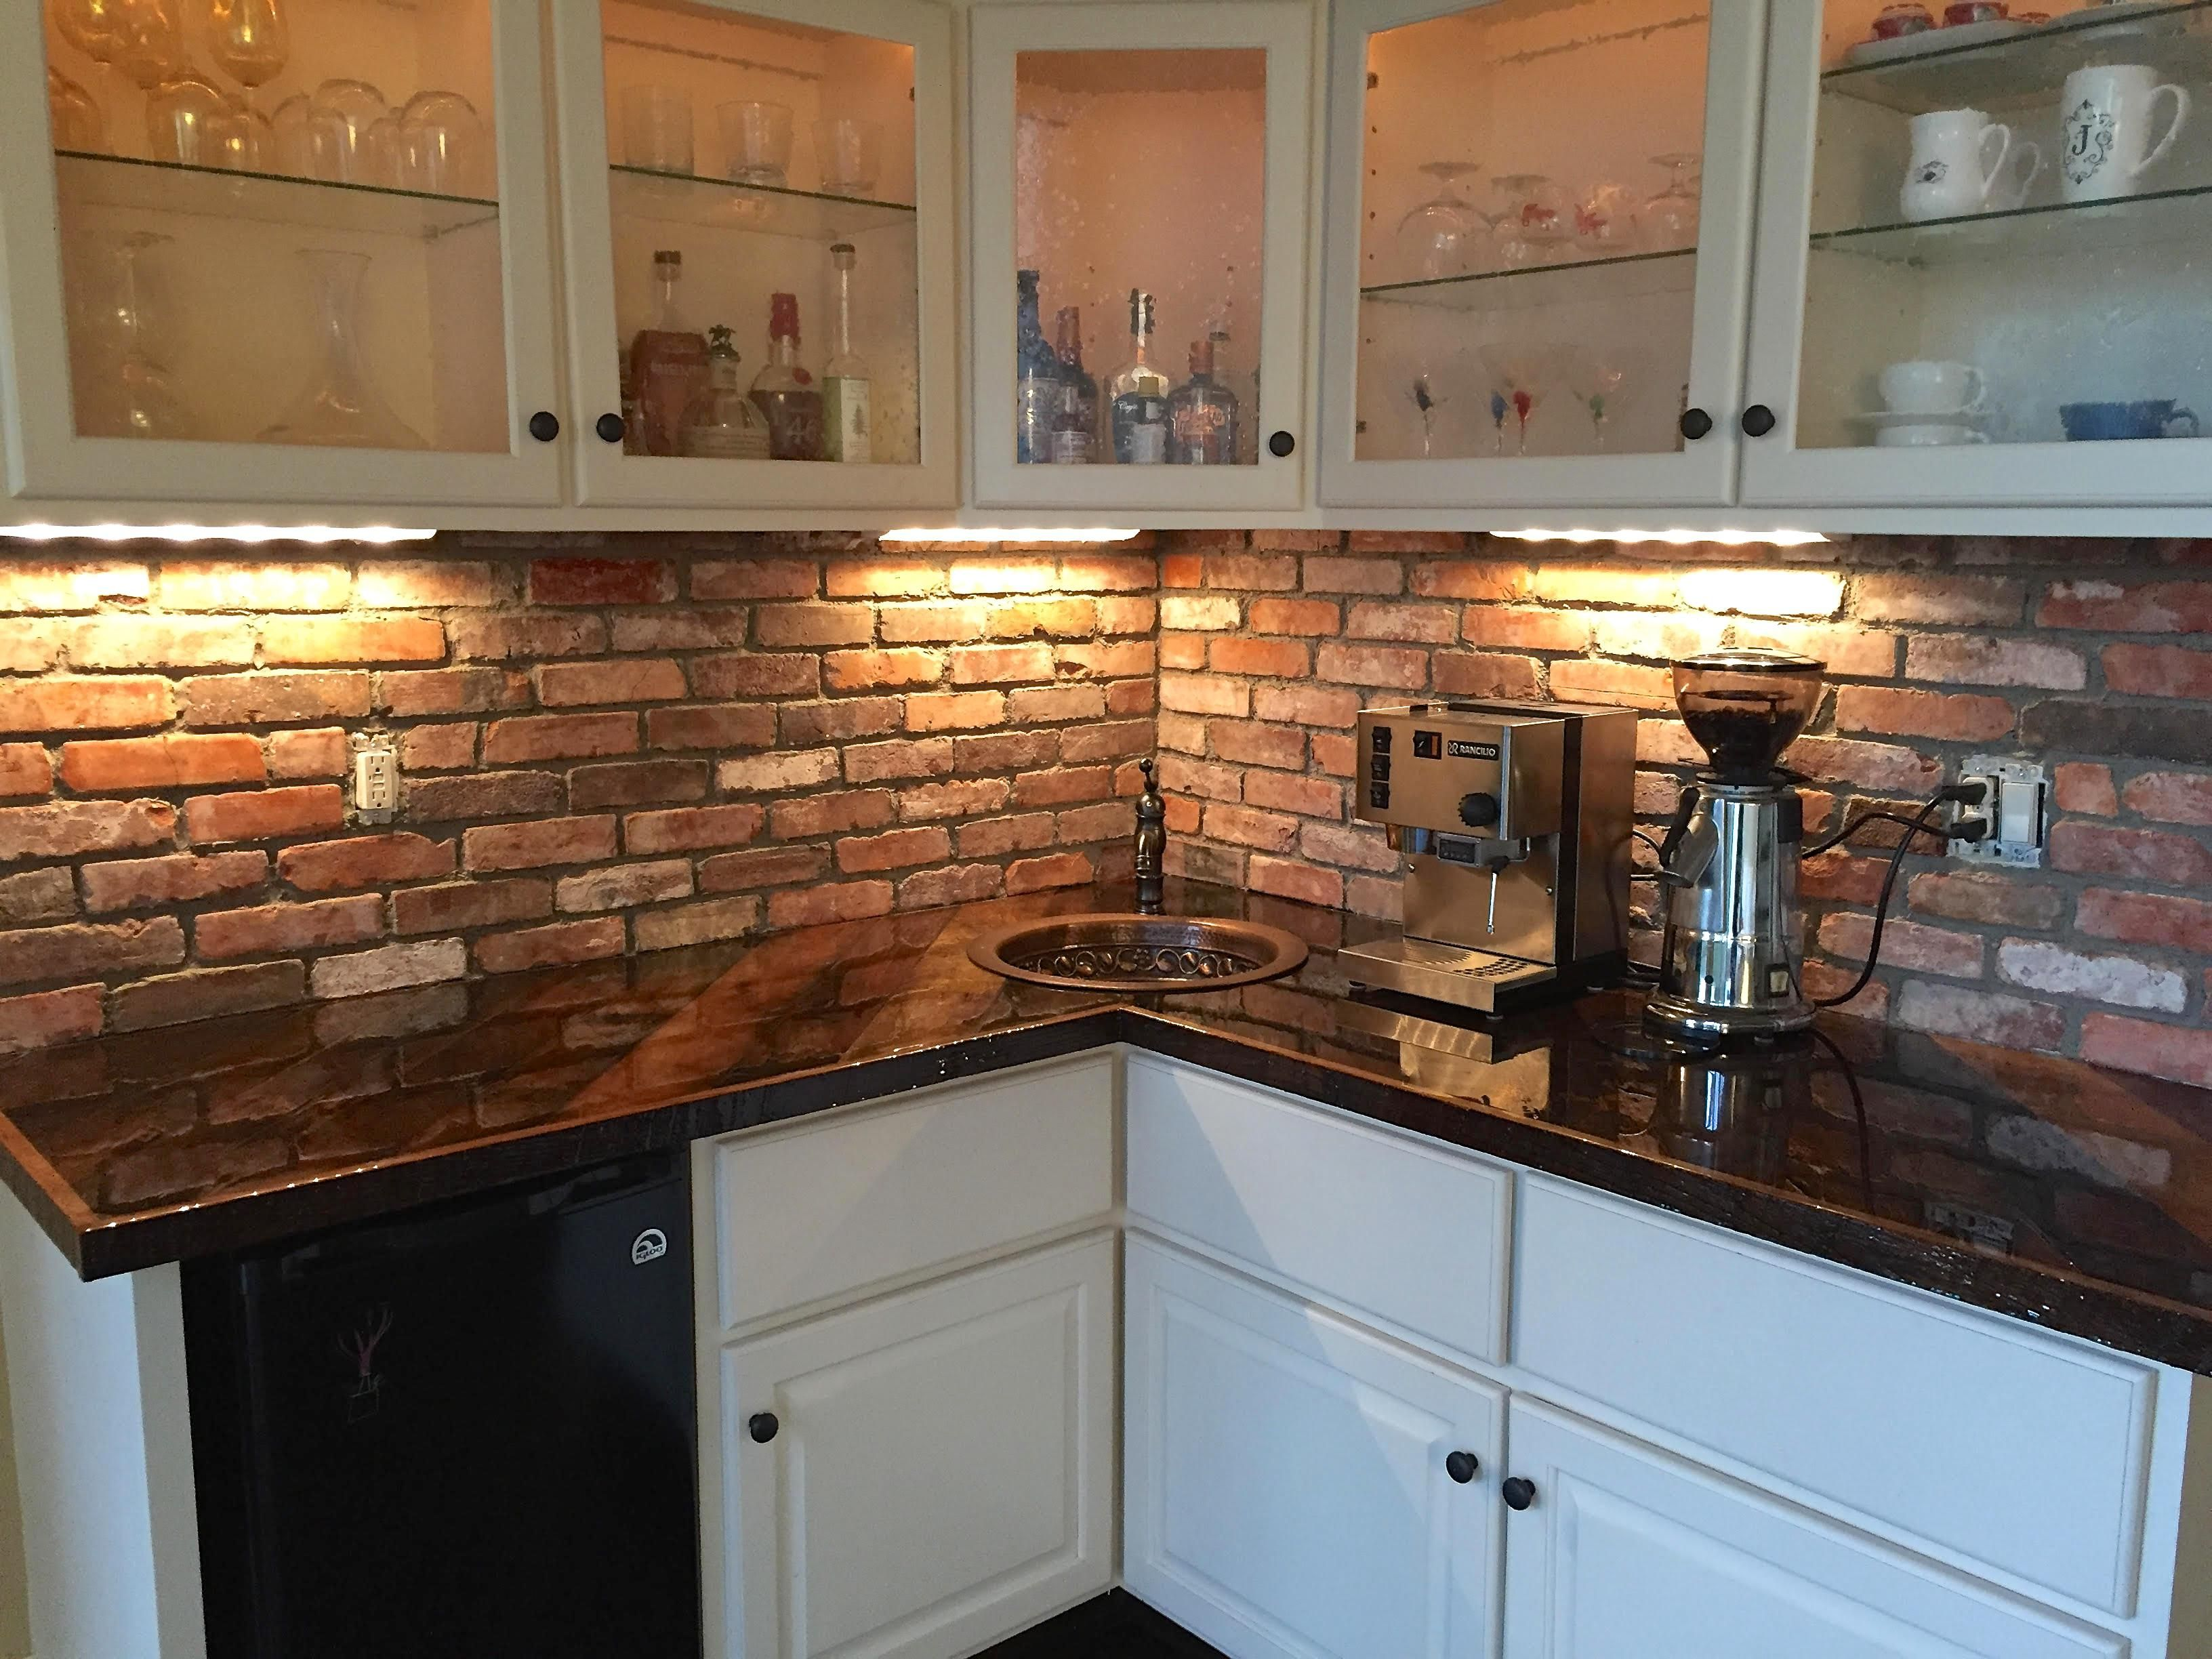 Kitchen Brick Backsplash Tile Ideas And Installation Brick Kitchen Brick Tiles Kitchen Brick Tile Backsplash